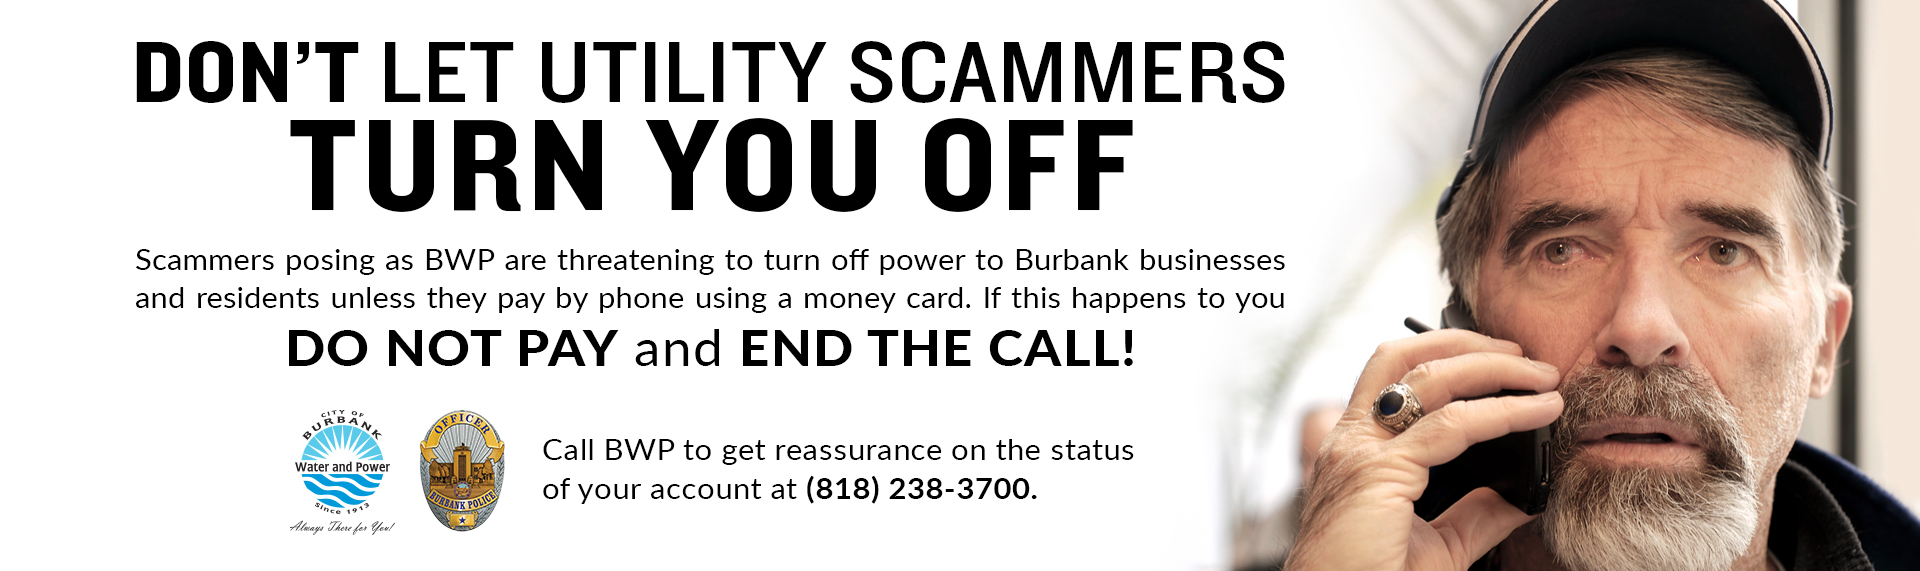 Learn More About Utility Scams Here >>